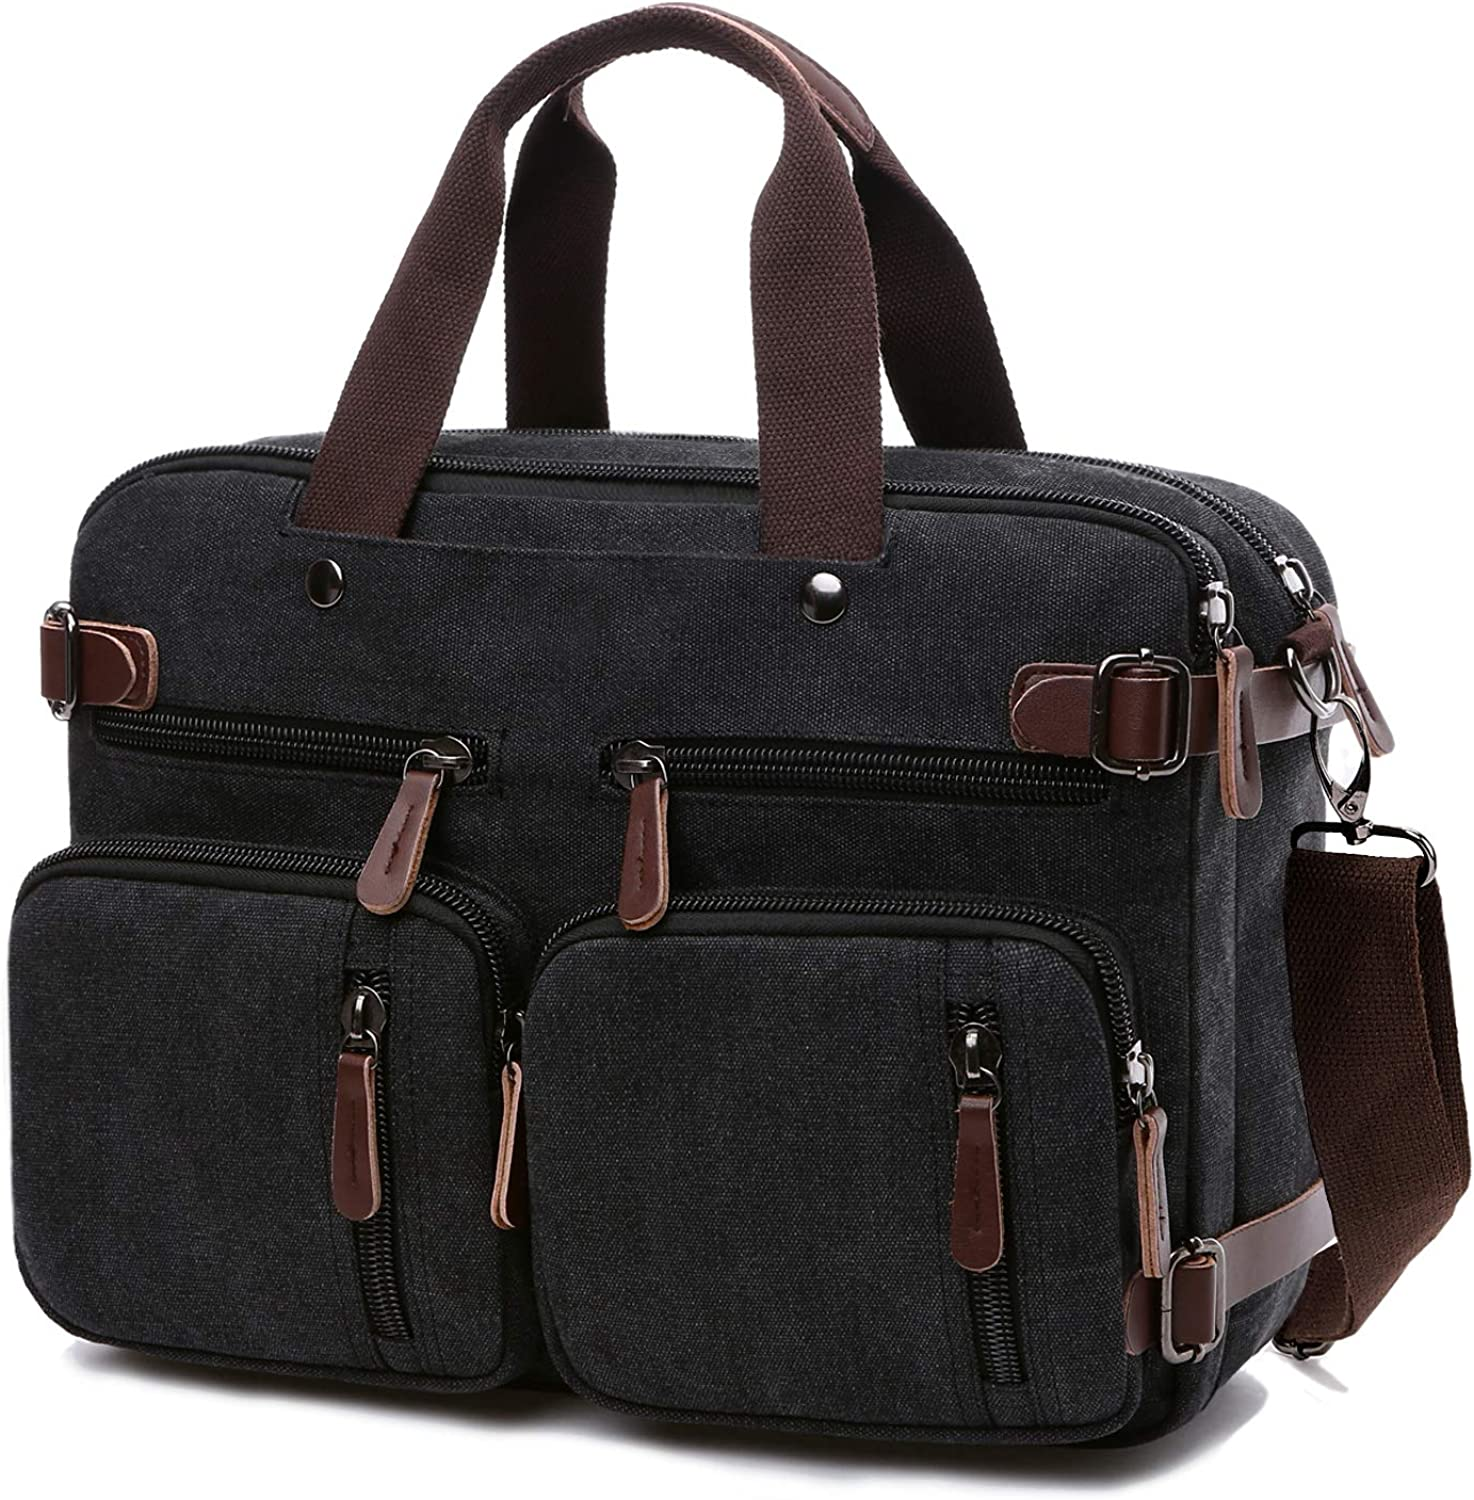 Customizable for Color Fabrics and Size WATERPROOF fabric Fully Padded Messenger Bag Laptop COMPARTMENT Laptop Backpack Convertible